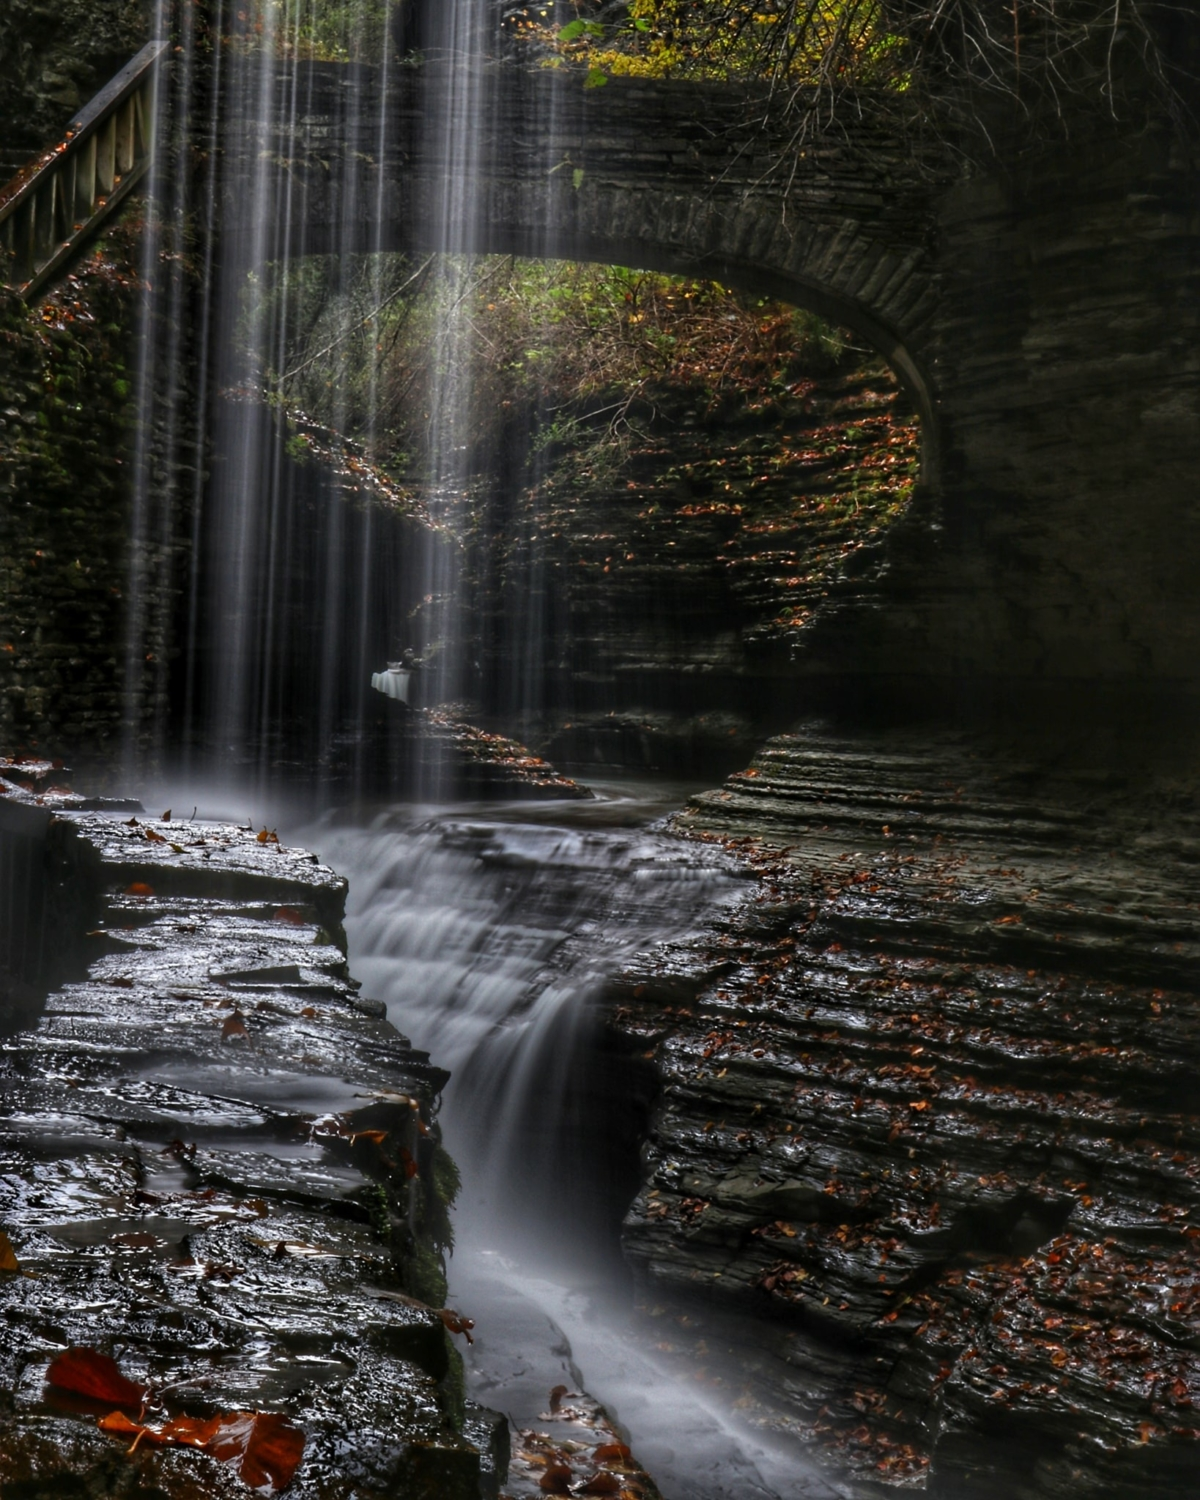 Tillinghast Manor Water fall at Watkins Glen